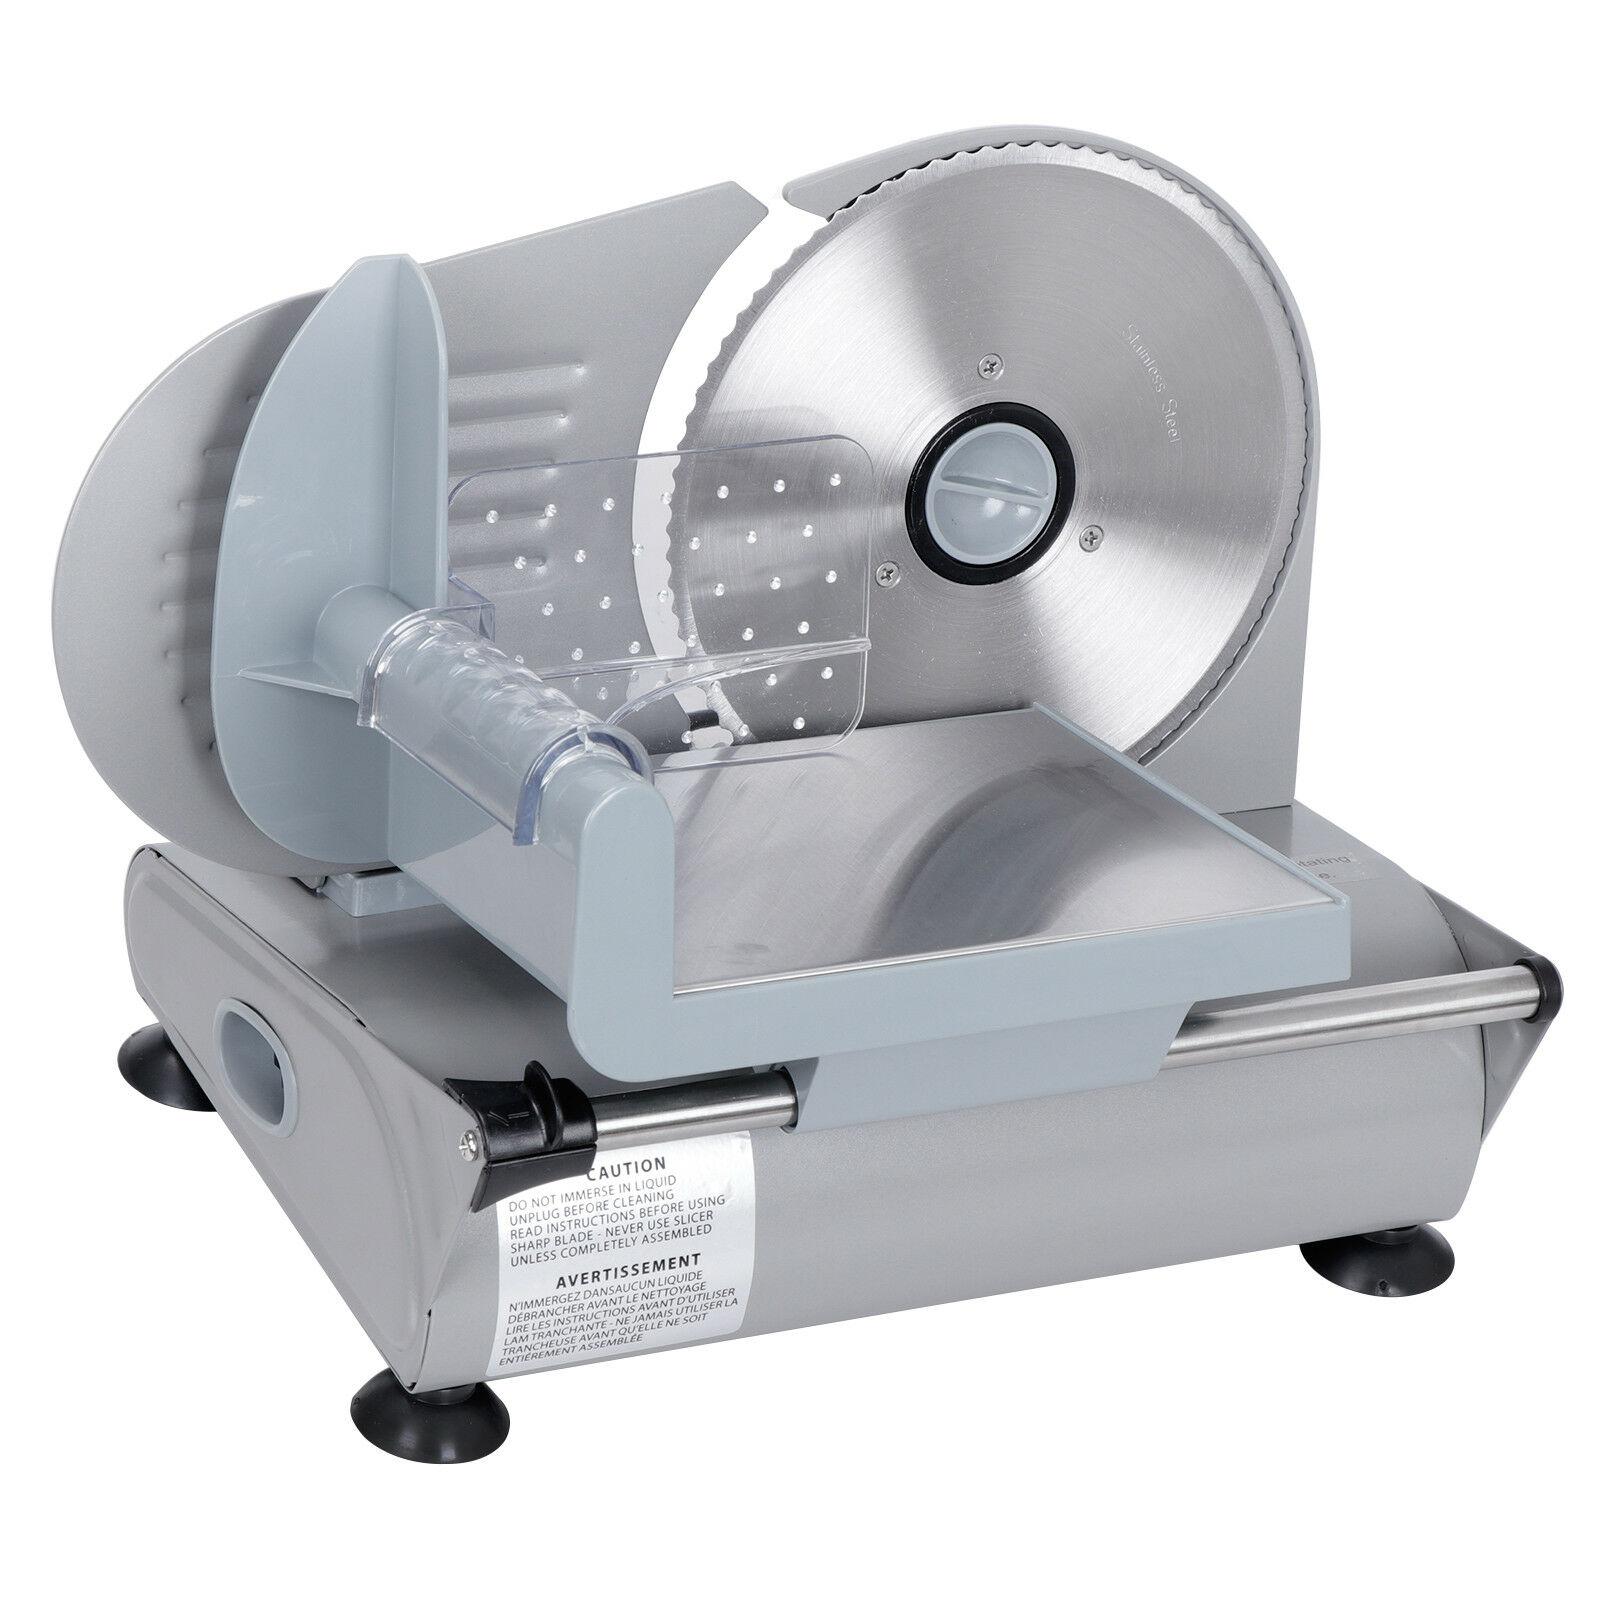 Meat Slicer 7.5  Blade Home Deli Food Slice Premium Quality Kitchen Countertop